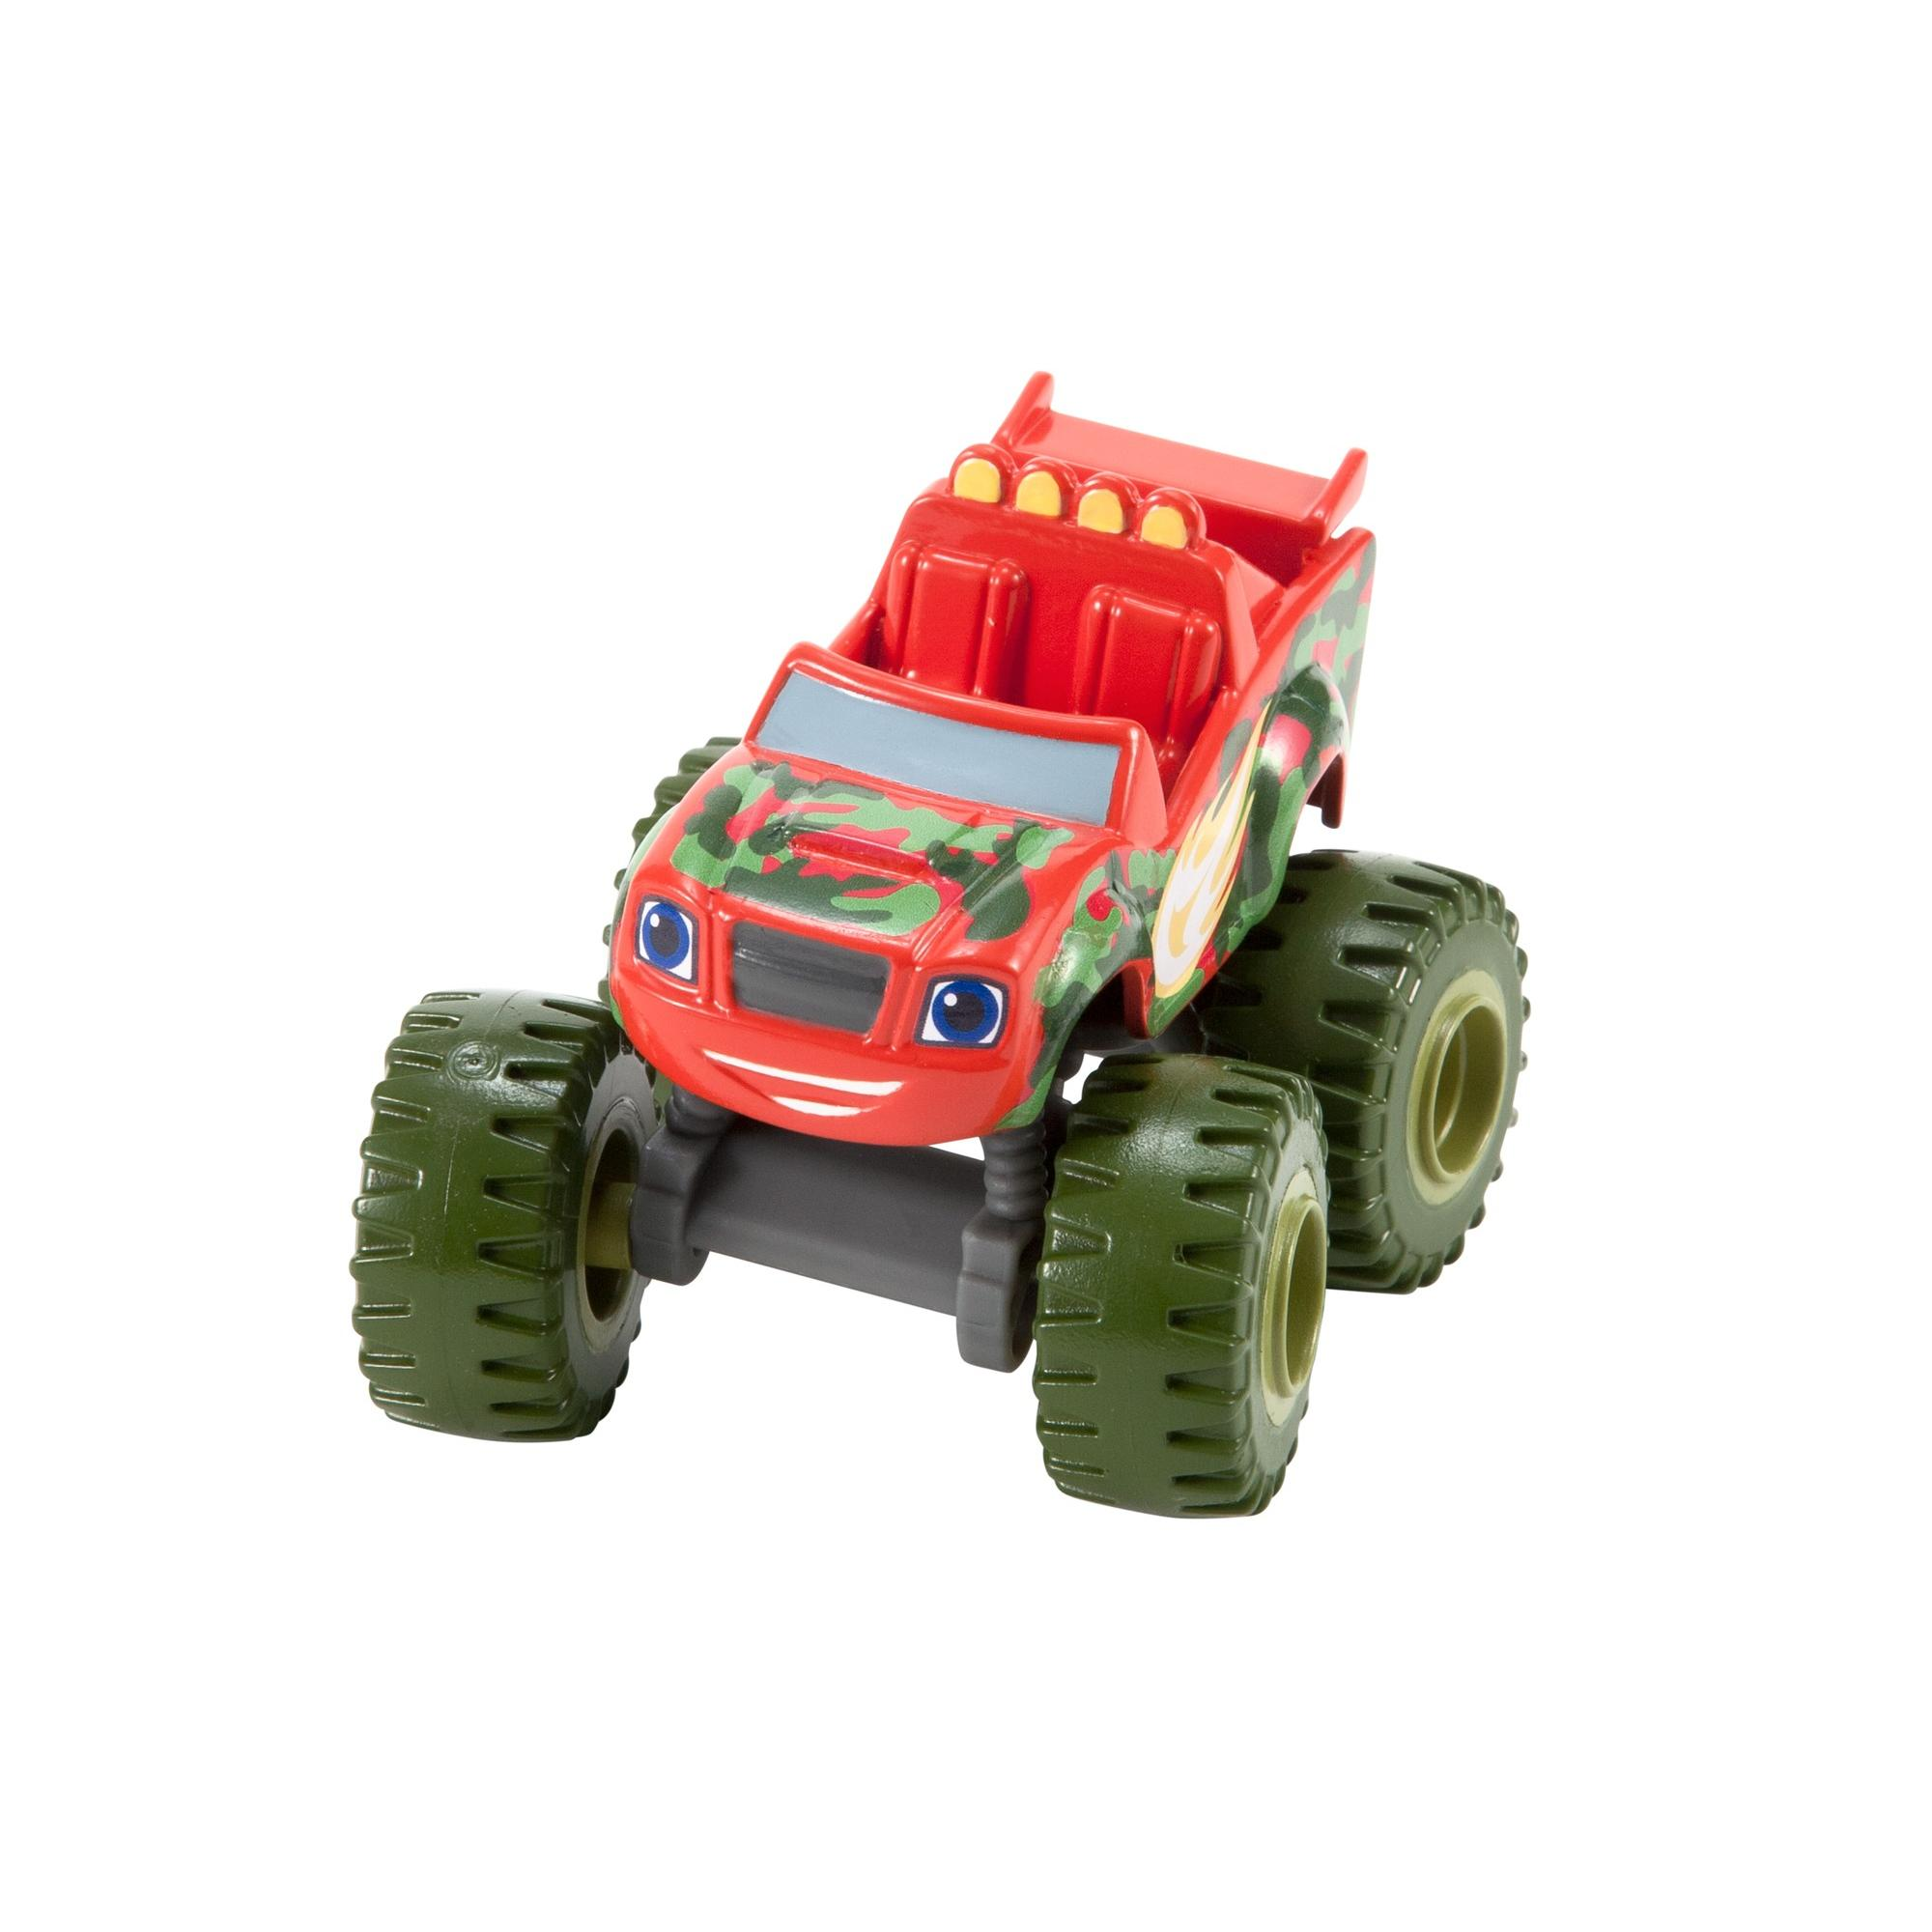 Nickelodeon Blaze and the Monster Machines, Camouflage Blaze by FISHER PRICE